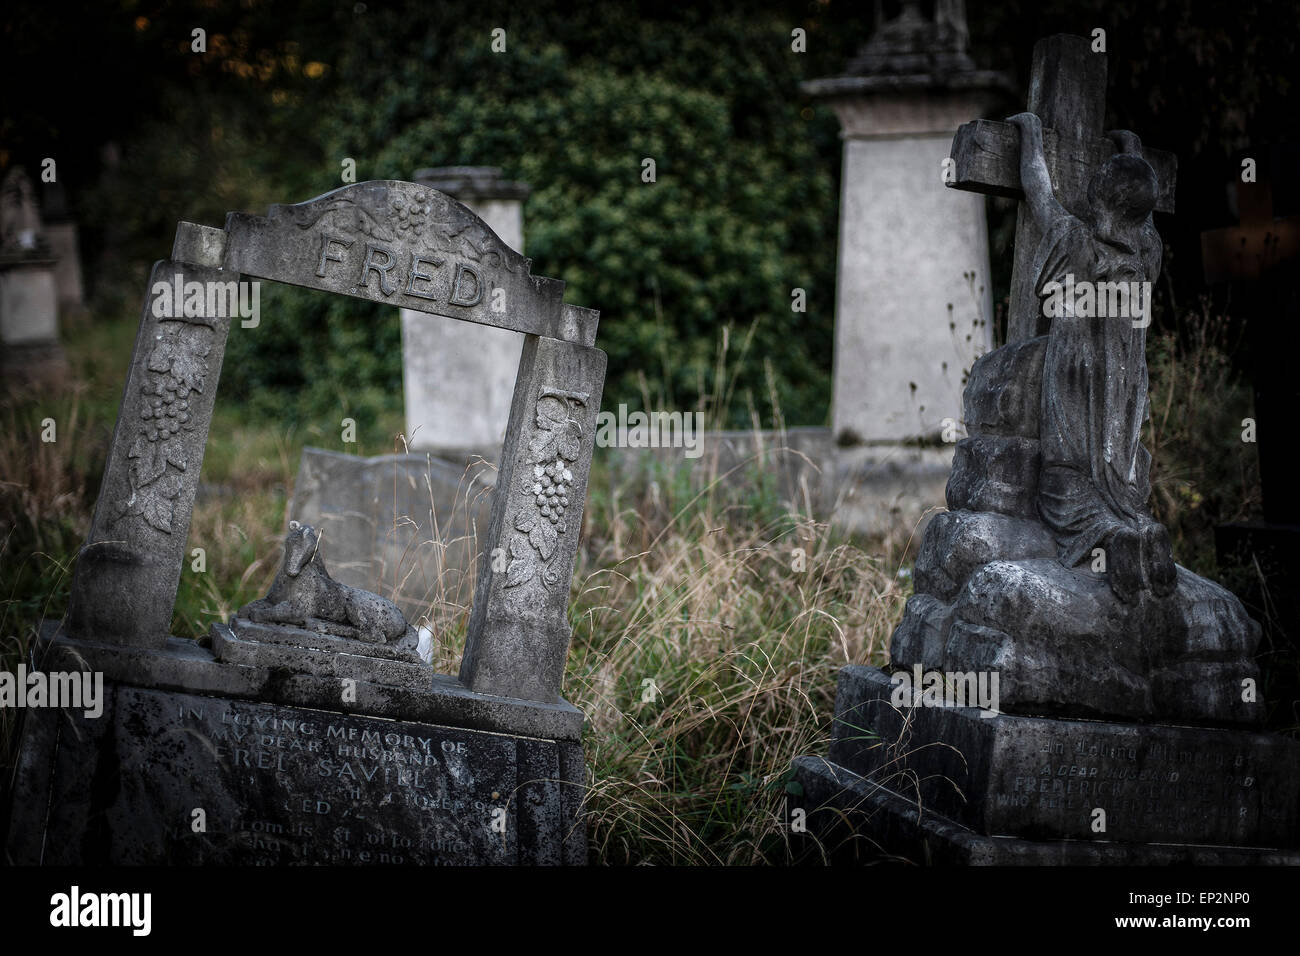 Tower Hamlets Cemetery in the East End of London. Stock Photo